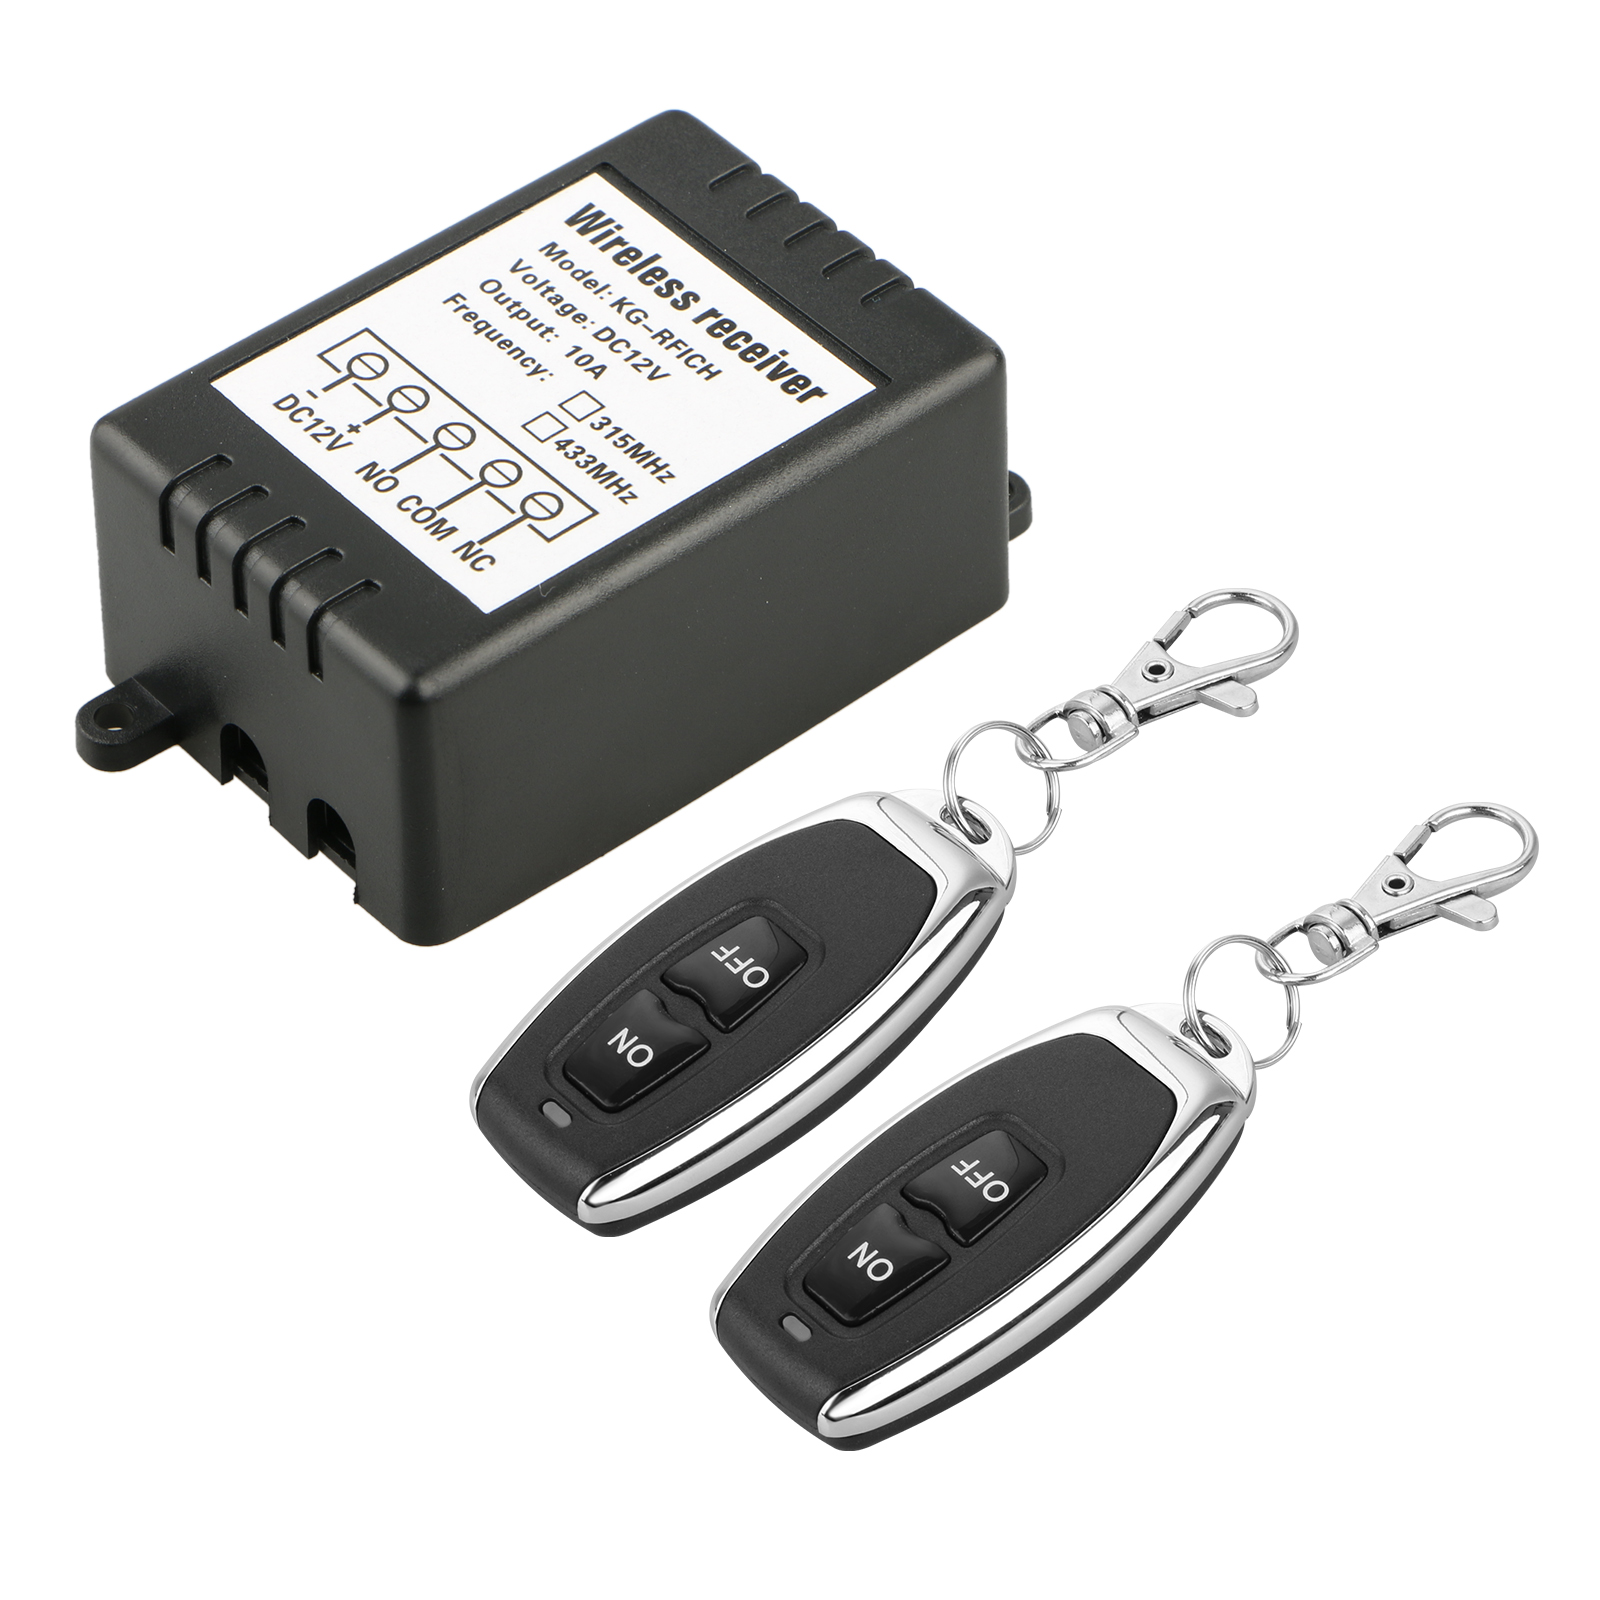 12V 10A Relay 1CH Wireless RF Remote Control Switch Transmitter + Receiver